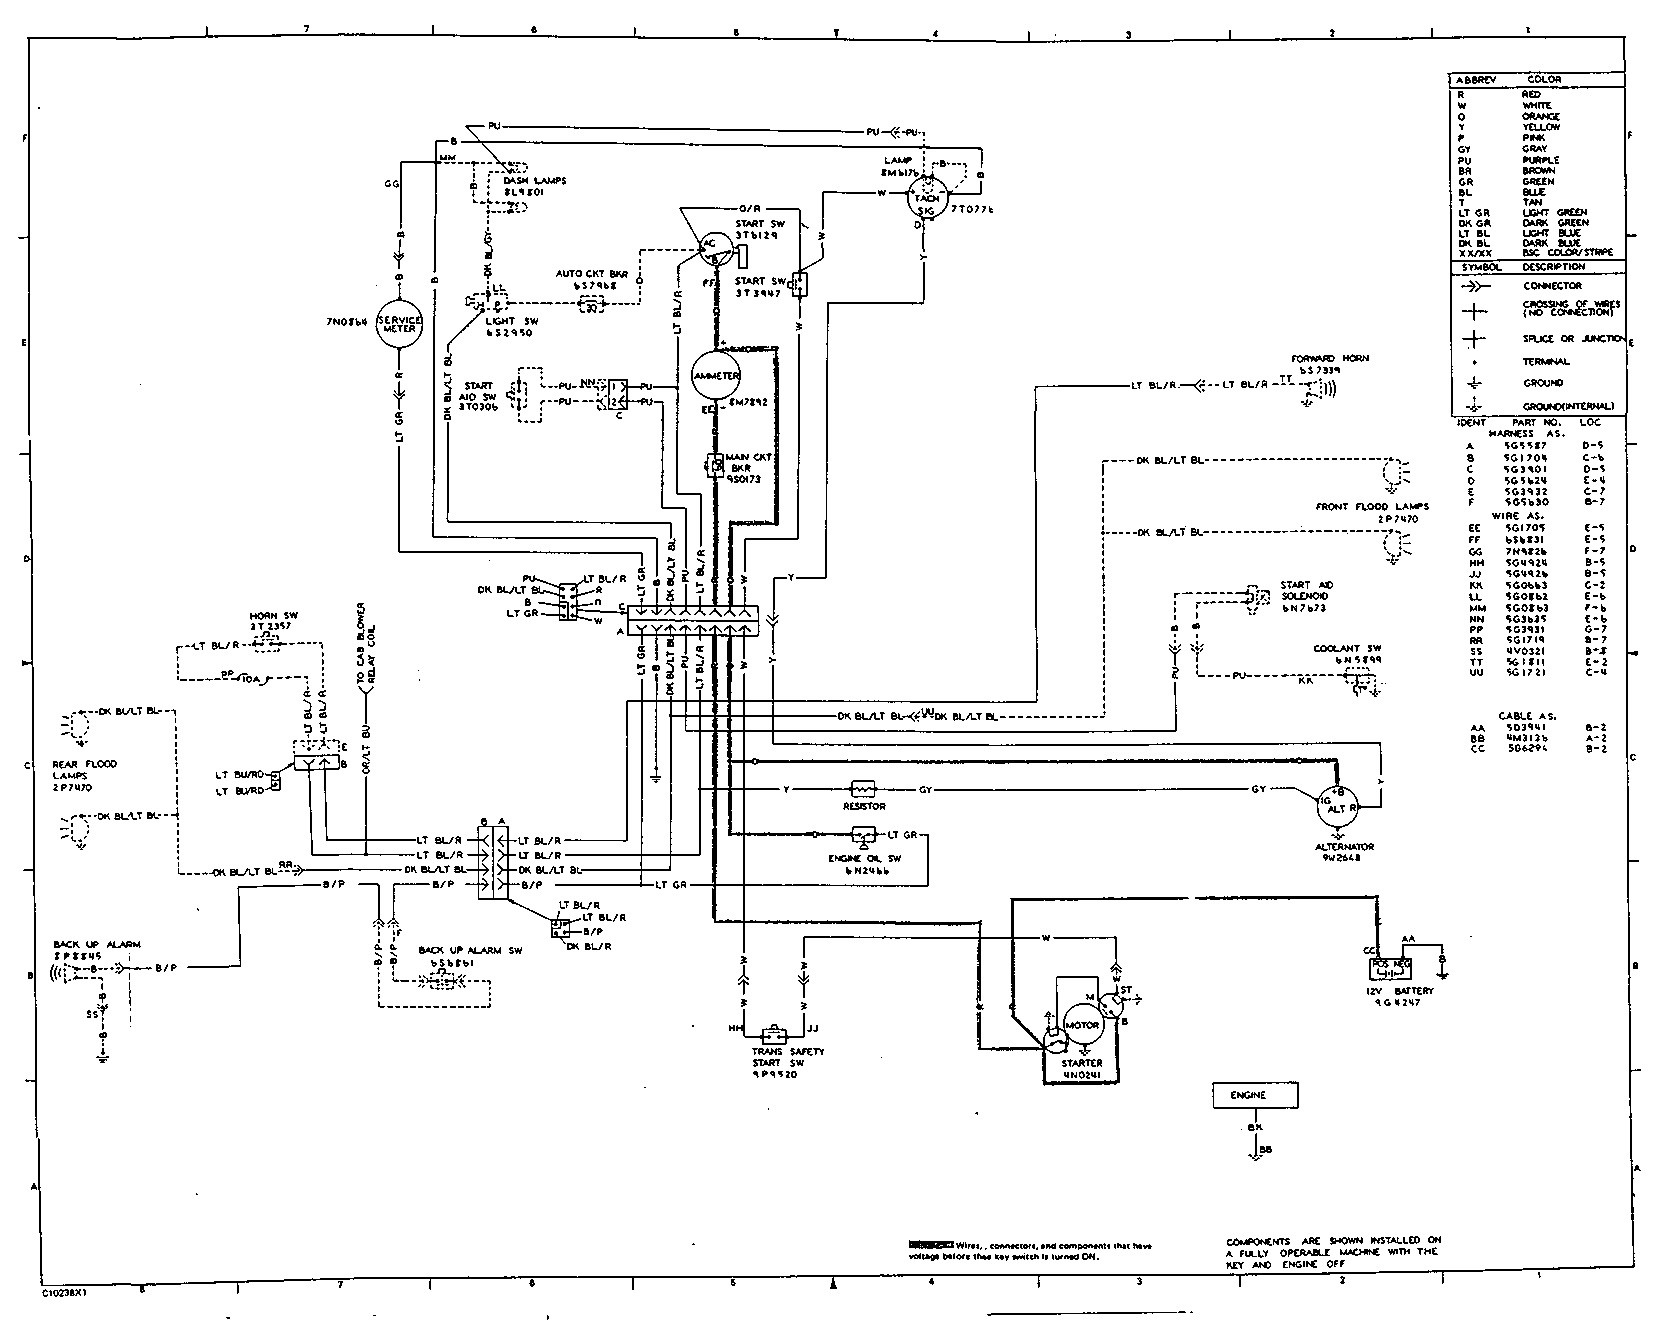 40Mz[DIAGRAM] Yamaha G9 Engine Diagram FULL Version HD